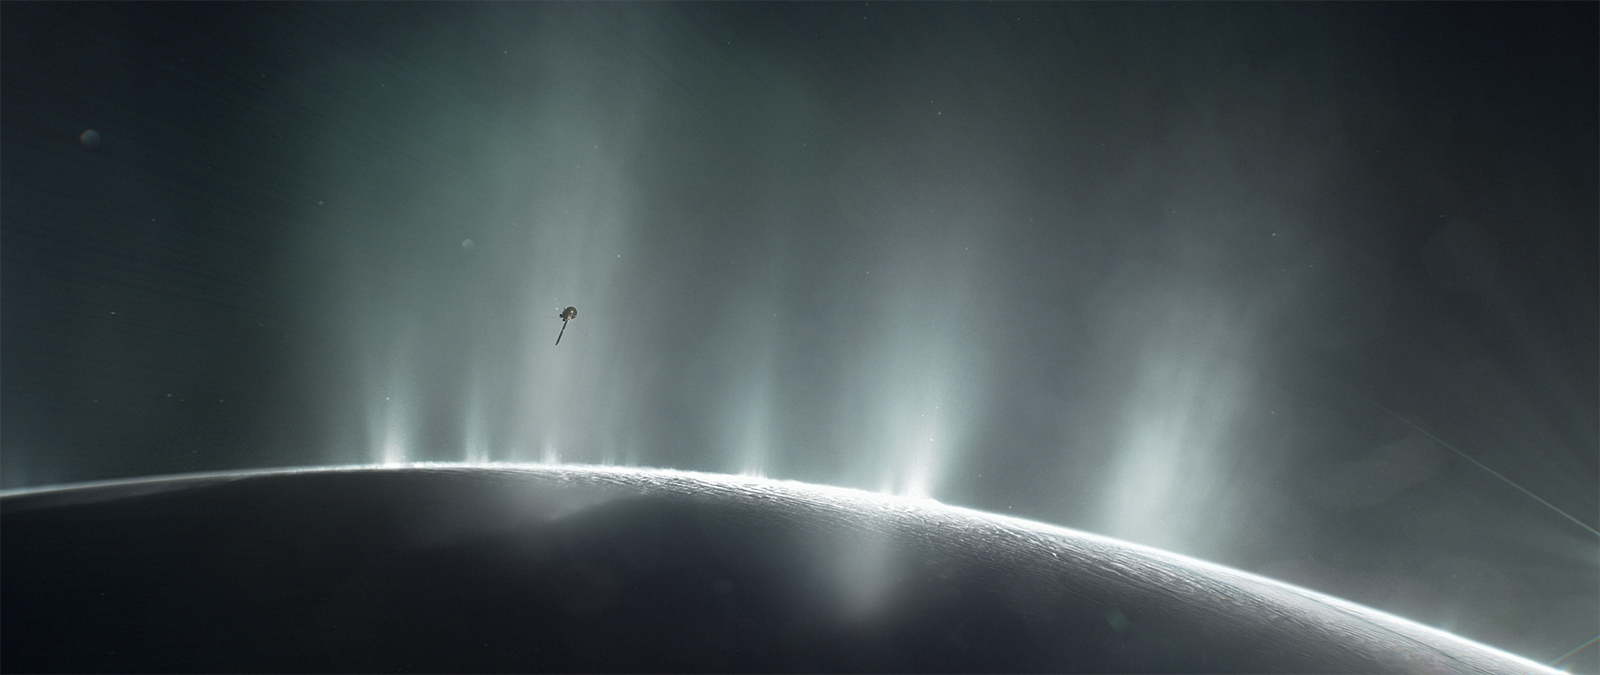 Artist concept of Cassini flying through Enceladus' plumes